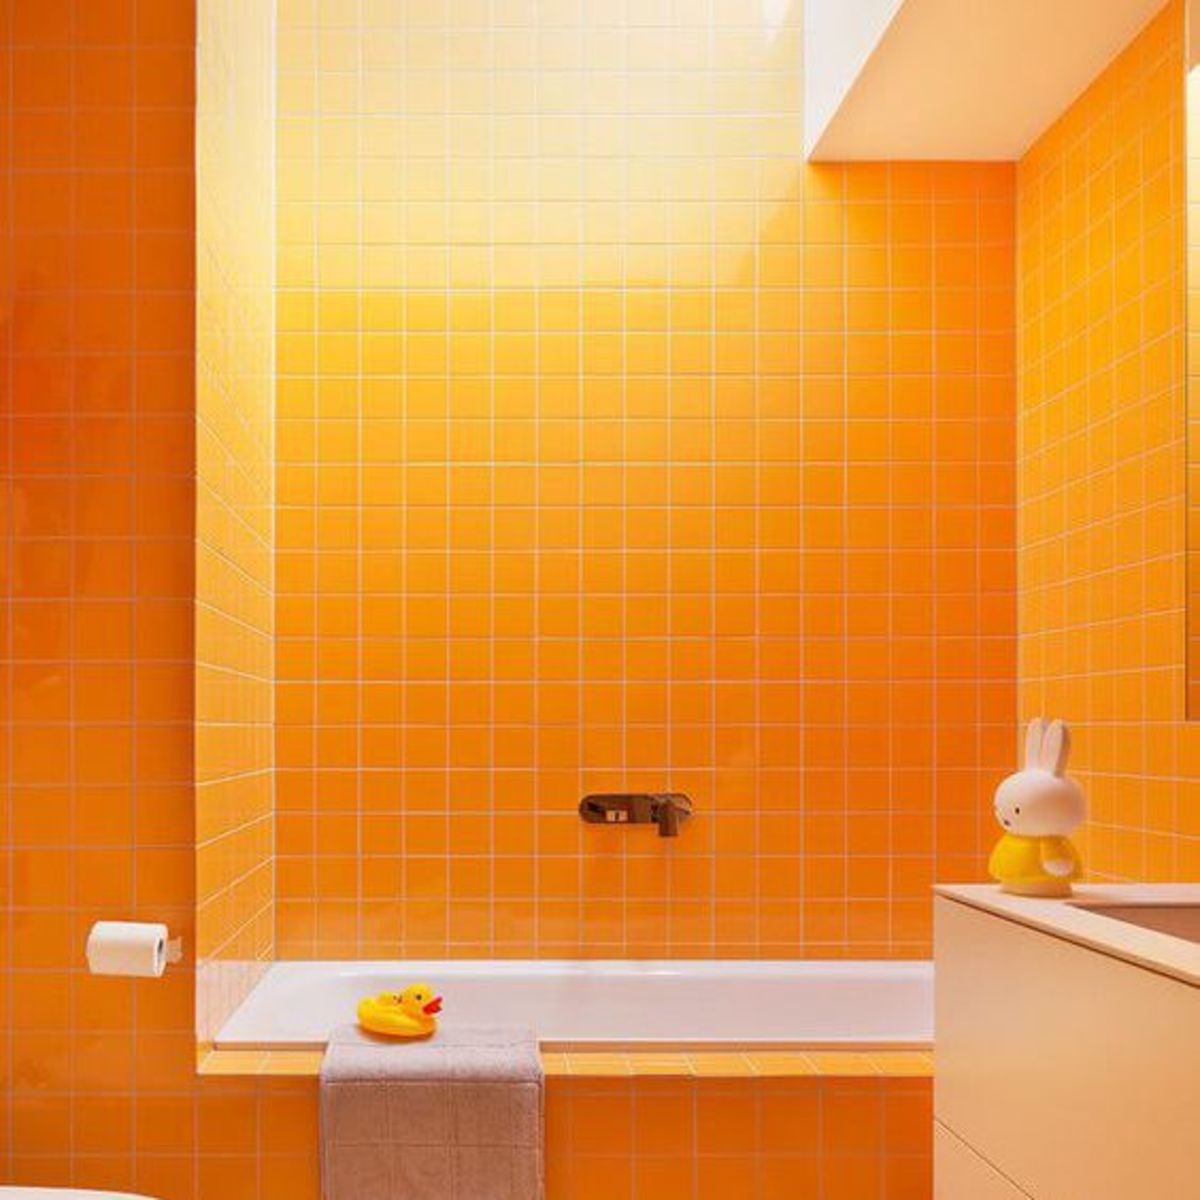 The Chinese Zodiac Horse wants a bathroom that is spacious, colorful, has wood elements and -- well -- a rubber ducky. The bathroom shouldn't be typical. You need a bright warm tone color. Tile is a plus.